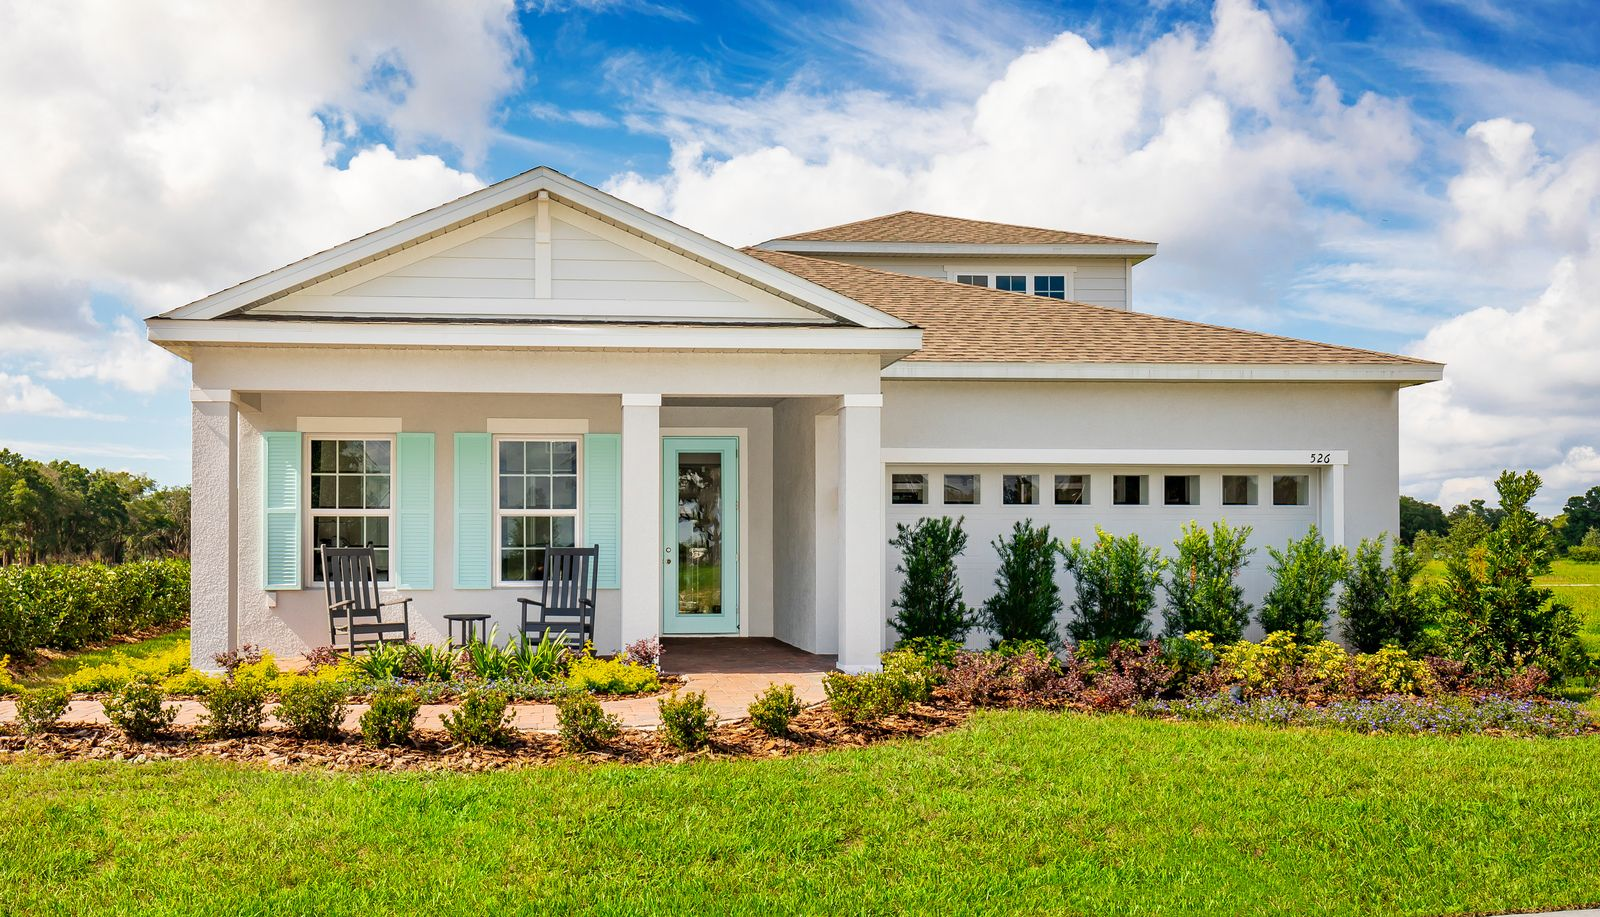 Welcome to Siena Reserve in St. Cloud, FL - Open By Appointment Only:Schedule yourvisittoday to own a brand new affordable single-family home in desirable Osceola County. Close to major highways and attractions. No CDD & 100% USDA Financing. From the Low$300s.